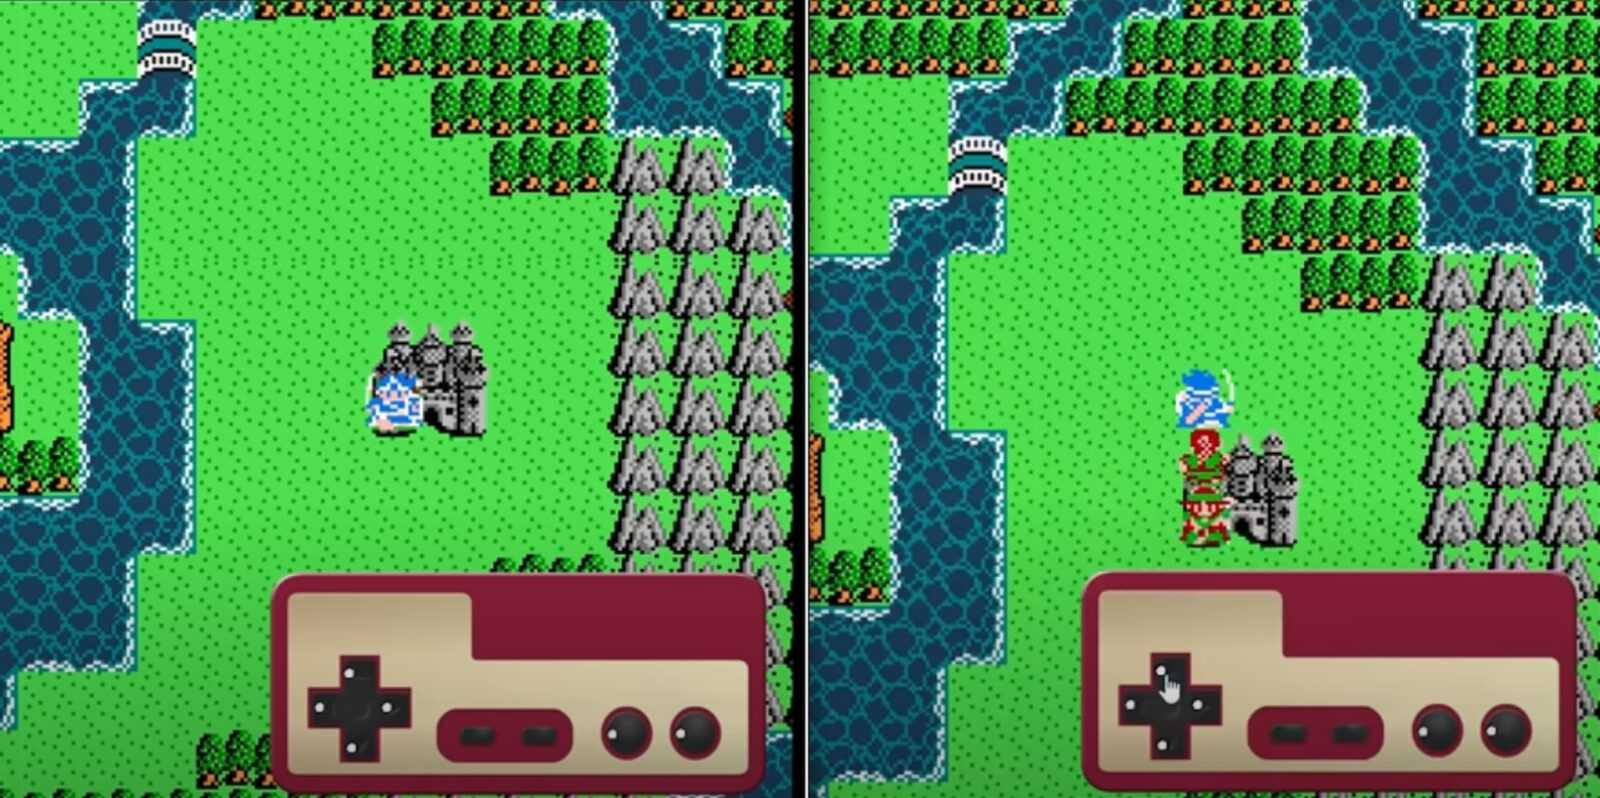 Dragon Quest 3 Reproduced Using Excel Spreadsheet Software